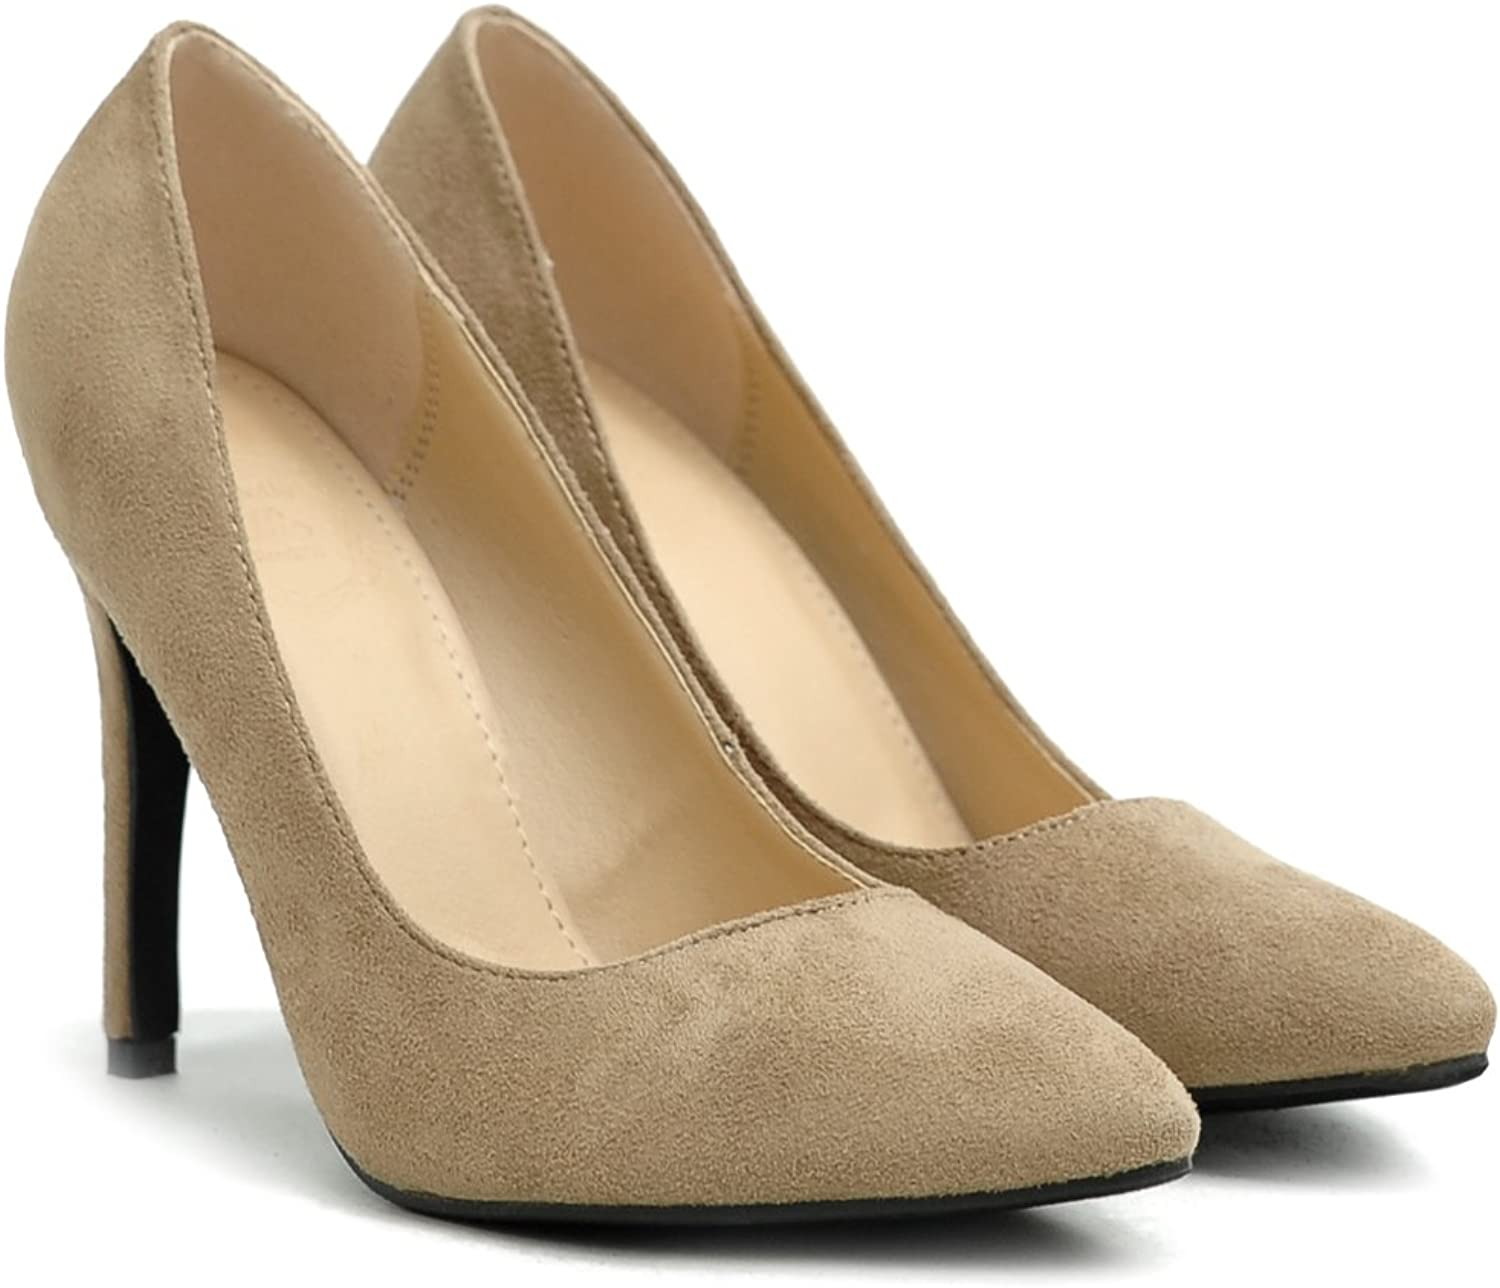 Ollio Womens Faux Suede Point Toe shoes D'Orsay High Heel Multi color Pump (8.5 B(M) US, Sand)